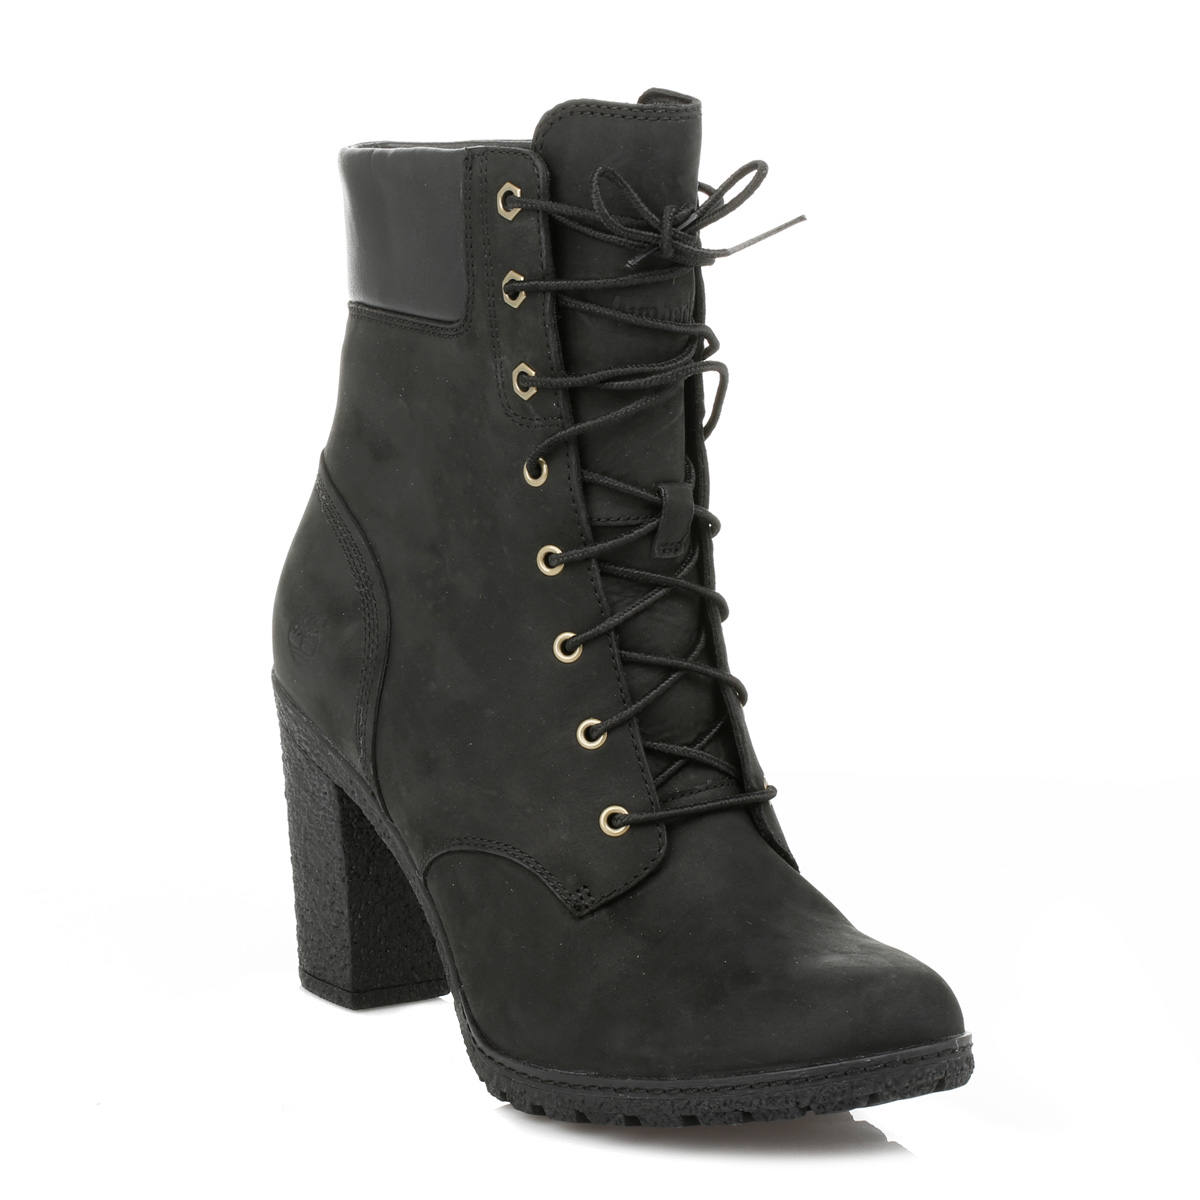 timberland bottes femme lacets noir talon glancy 6 bottines bottes chaussures 8432 a ebay. Black Bedroom Furniture Sets. Home Design Ideas